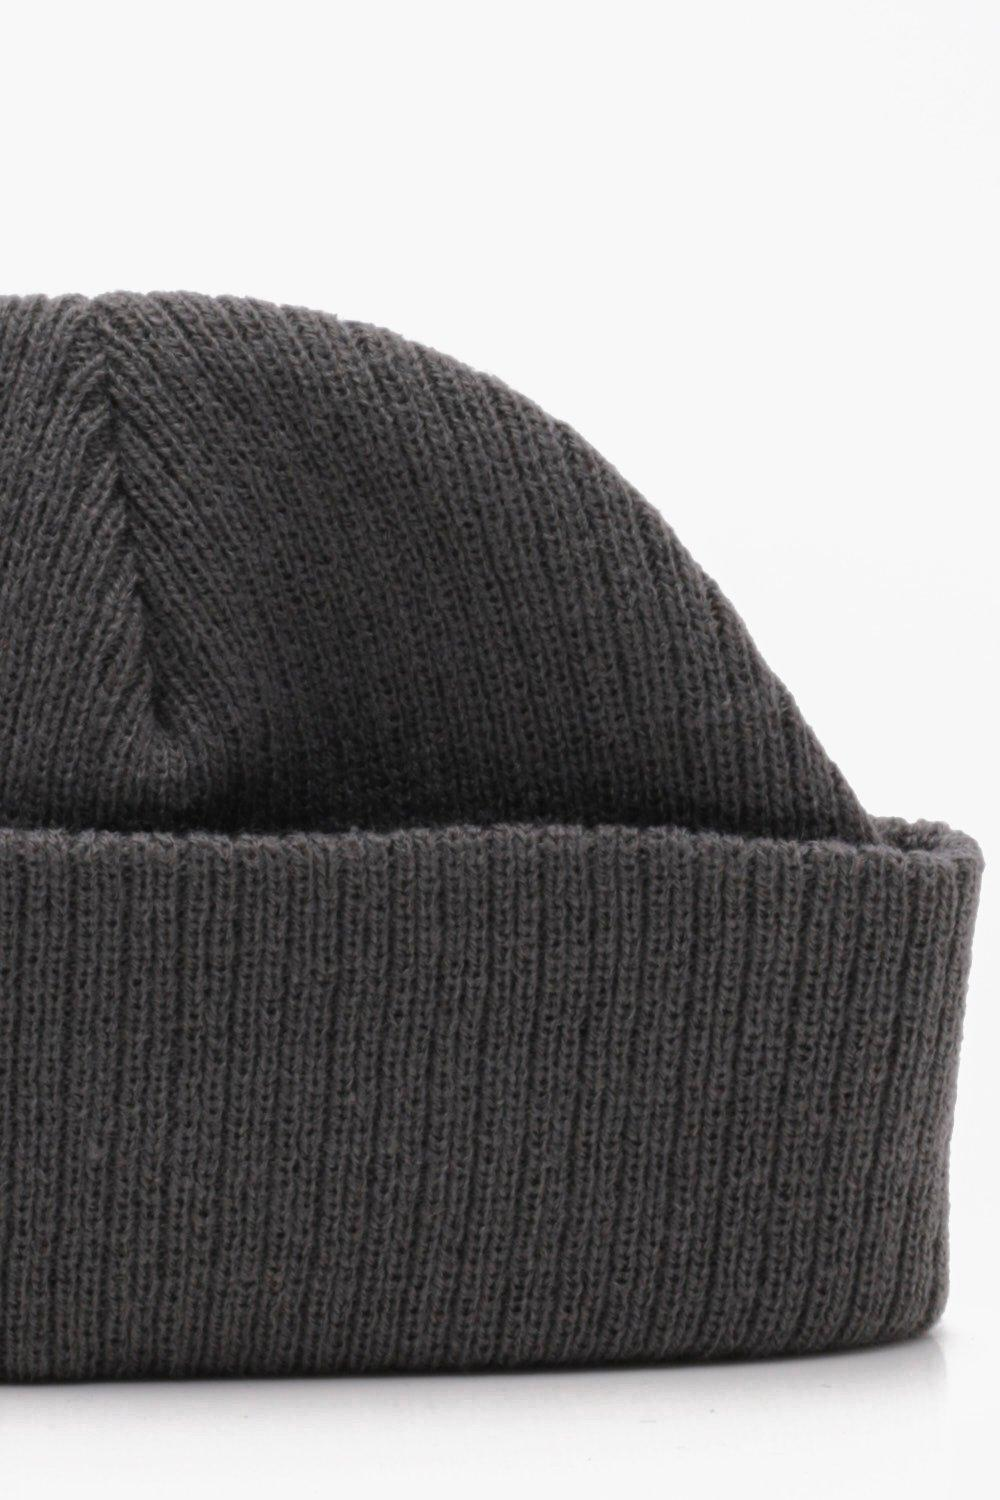 adceebff924 Lyst - Boohoo Ribbed Knit Short Fit Beanie With Turn Up in Gray for Men